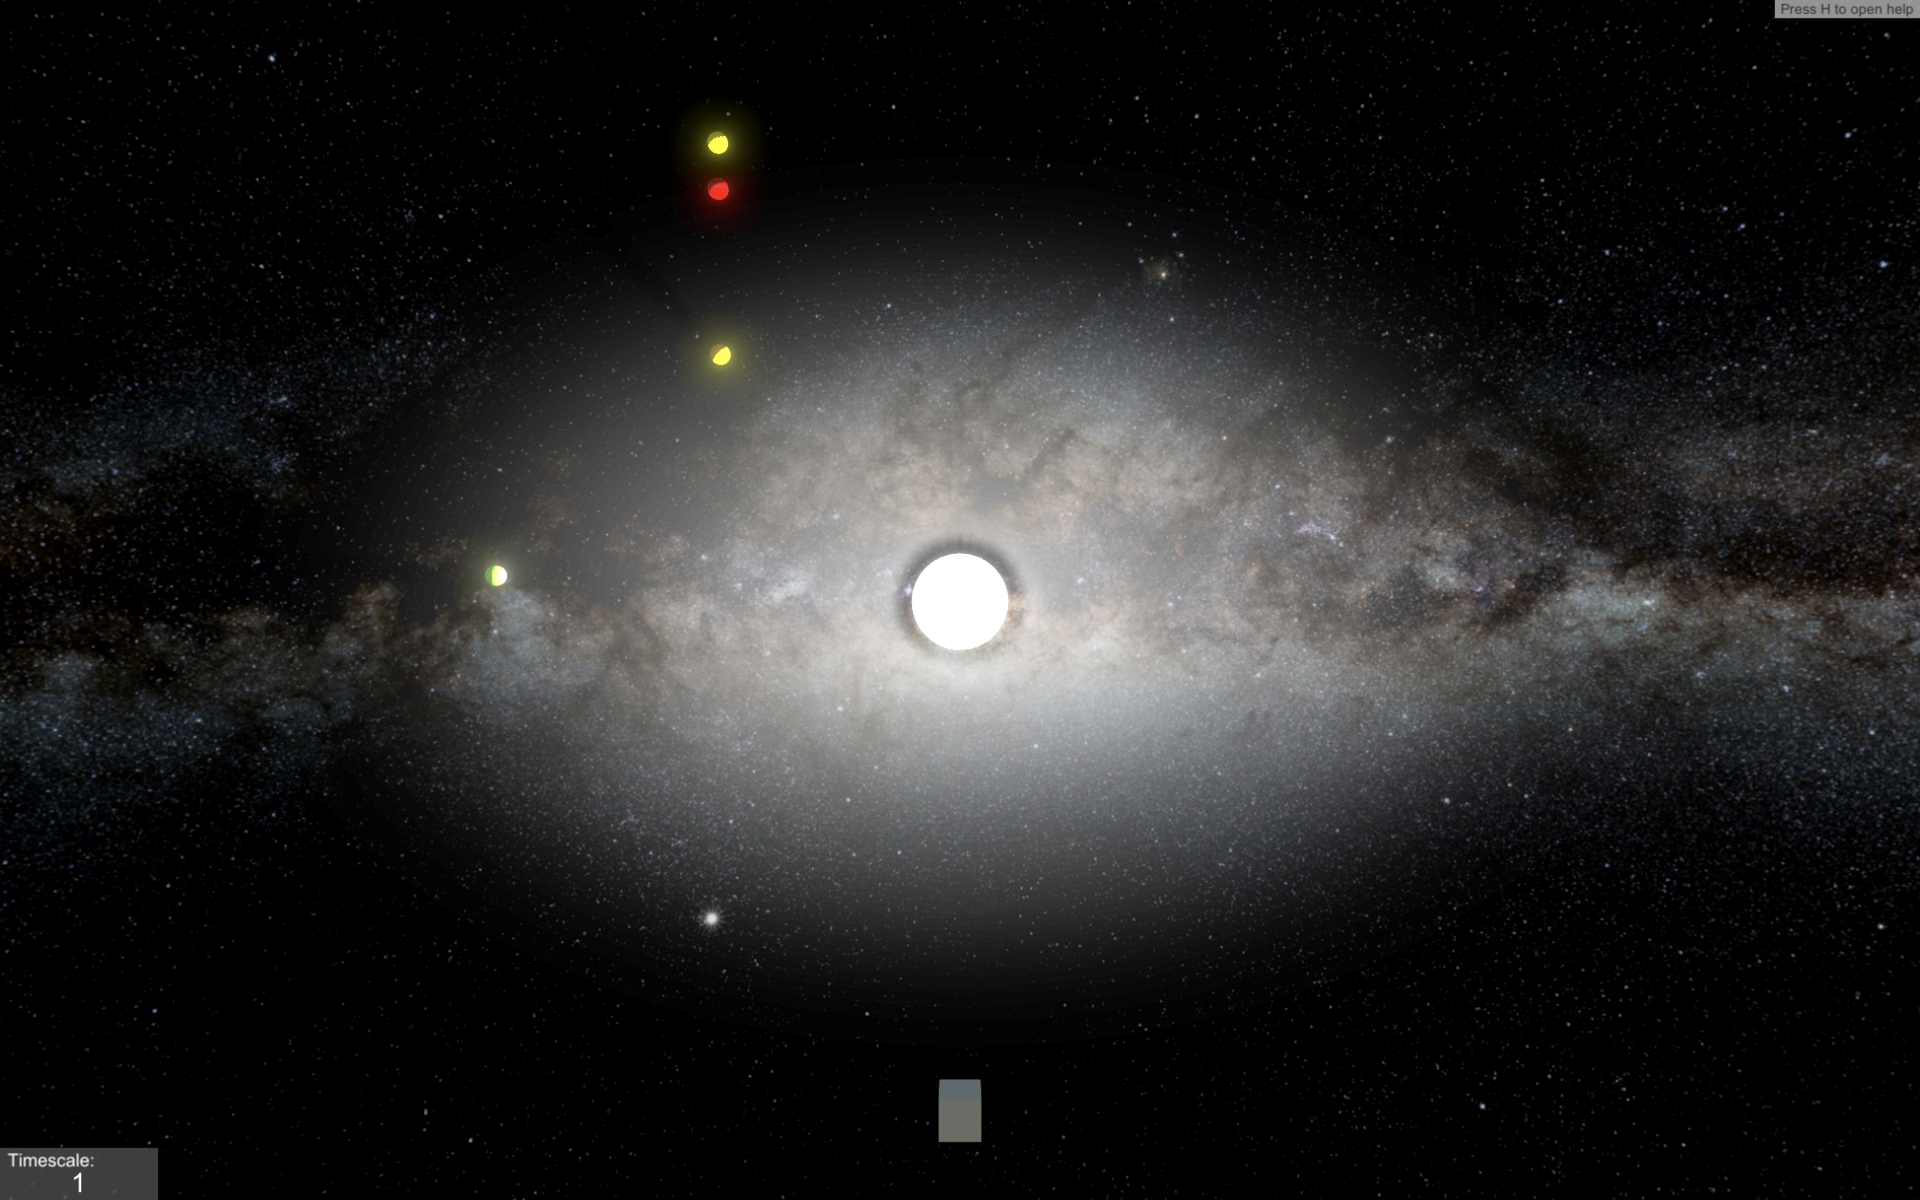 Bright virtual sun being orbited by 4 colorful planets shown from outer space